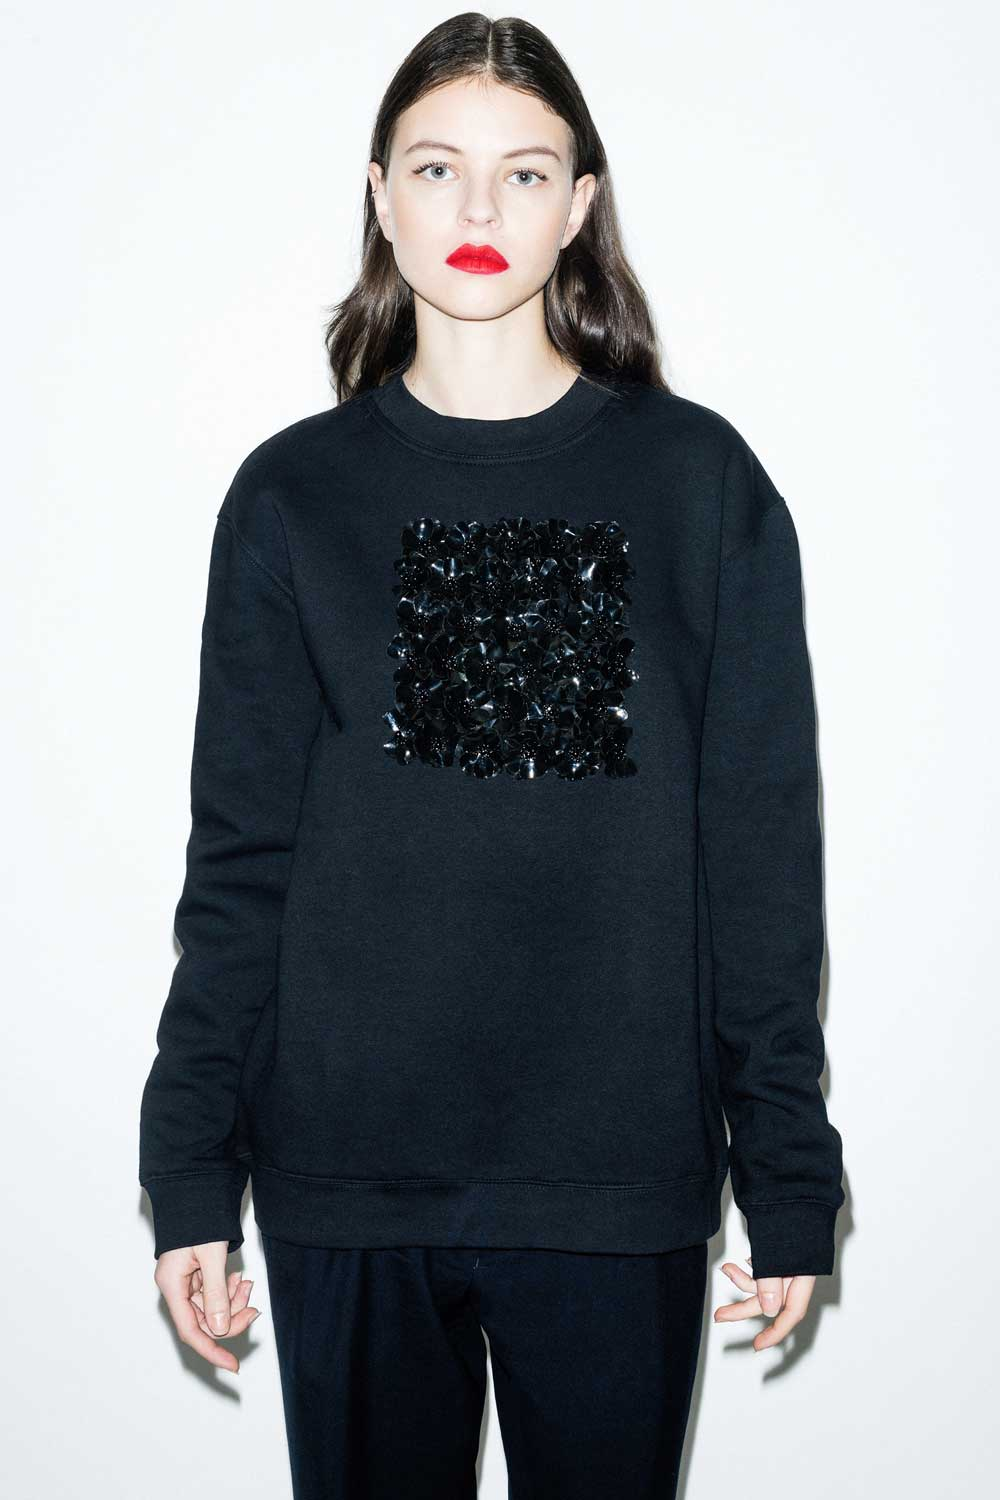 fflag-sweatshirt-poppies-ornement-fleurs-sequins-noir1